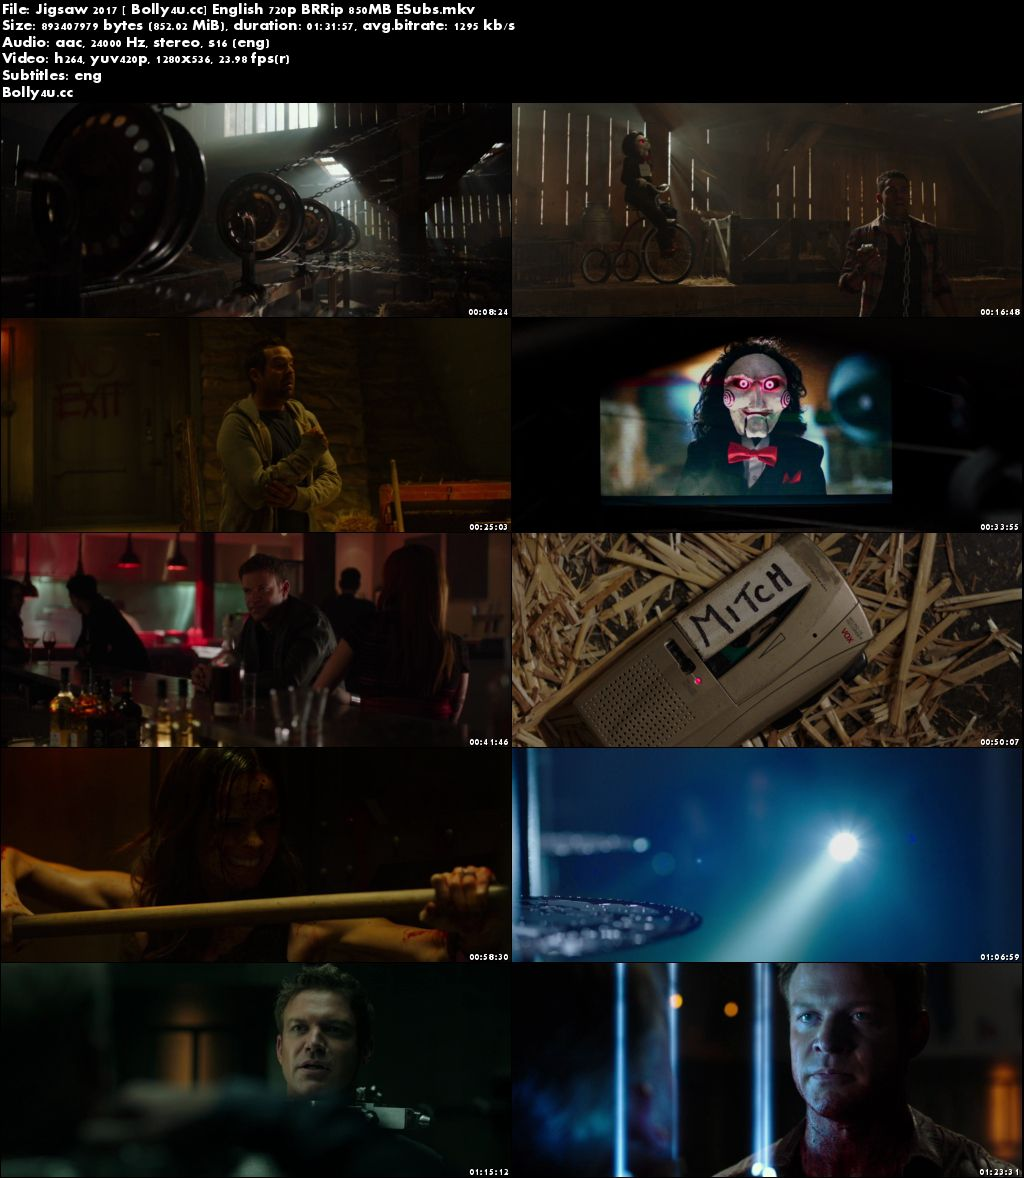 Jigsaw 2017 BluRay 850MB English 720p ESubs Download